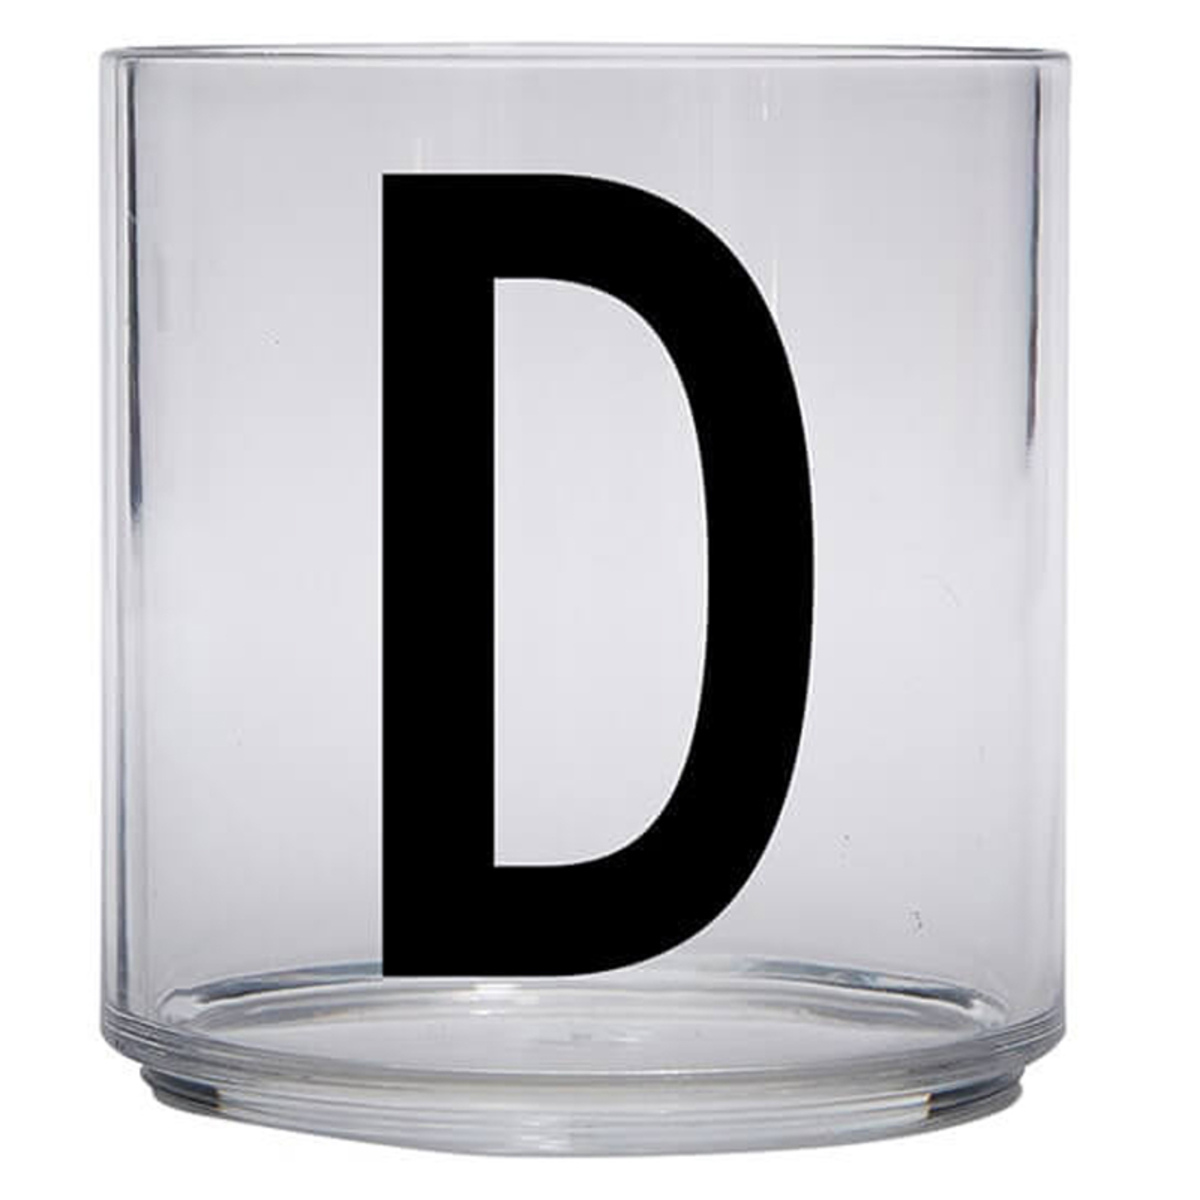 Tasse & Verre Verre Transparent D - 220 ml Verre Transparent D - 220 ml